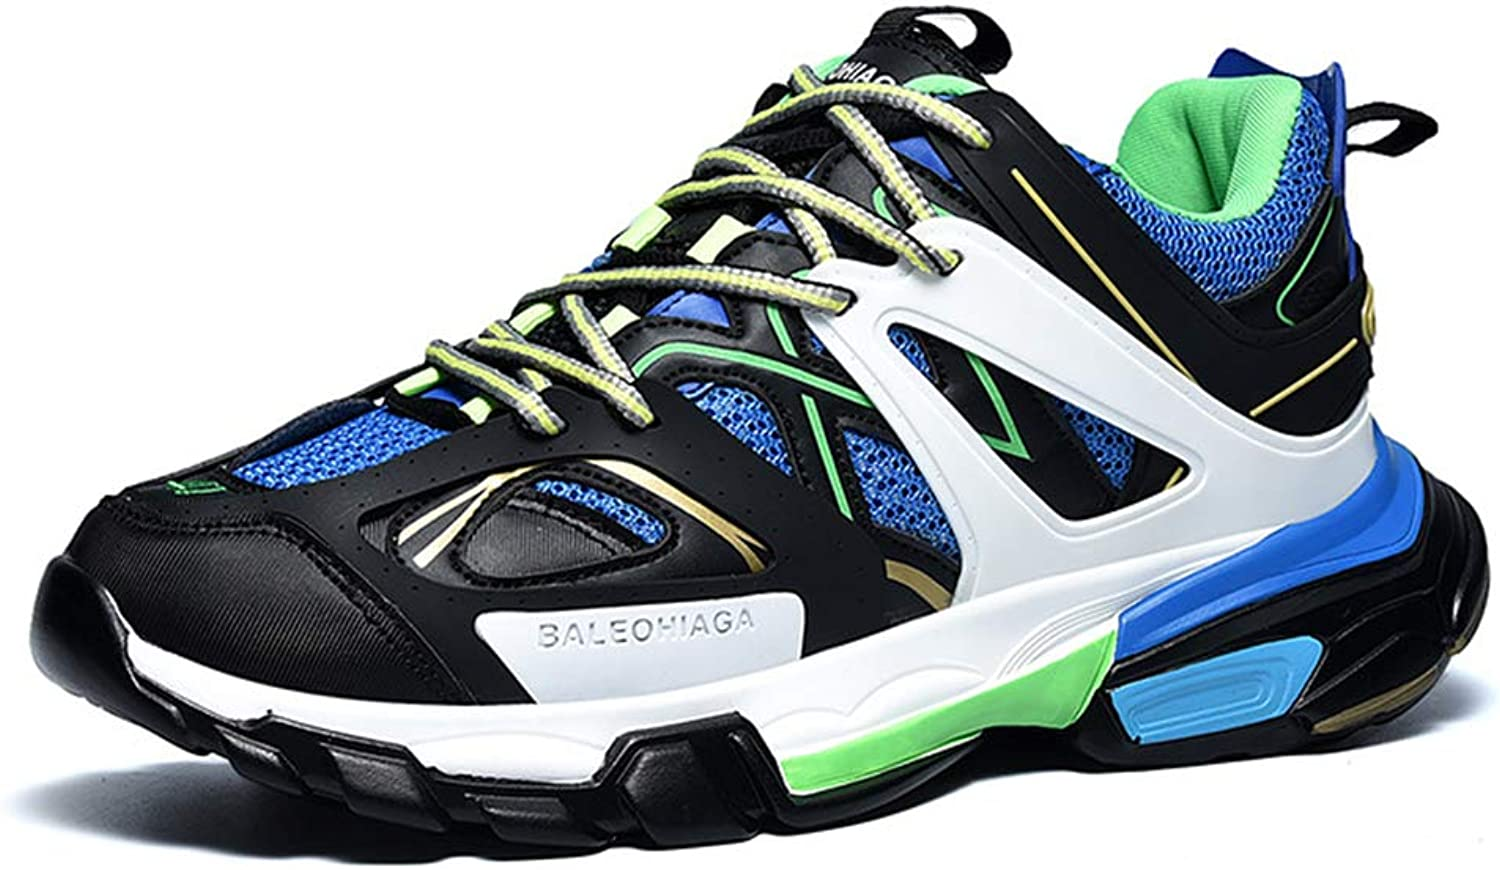 LH Men's sports outdoor casual running shoes, non-slip wear-resistant and shockproof comfortable trend shoes,41